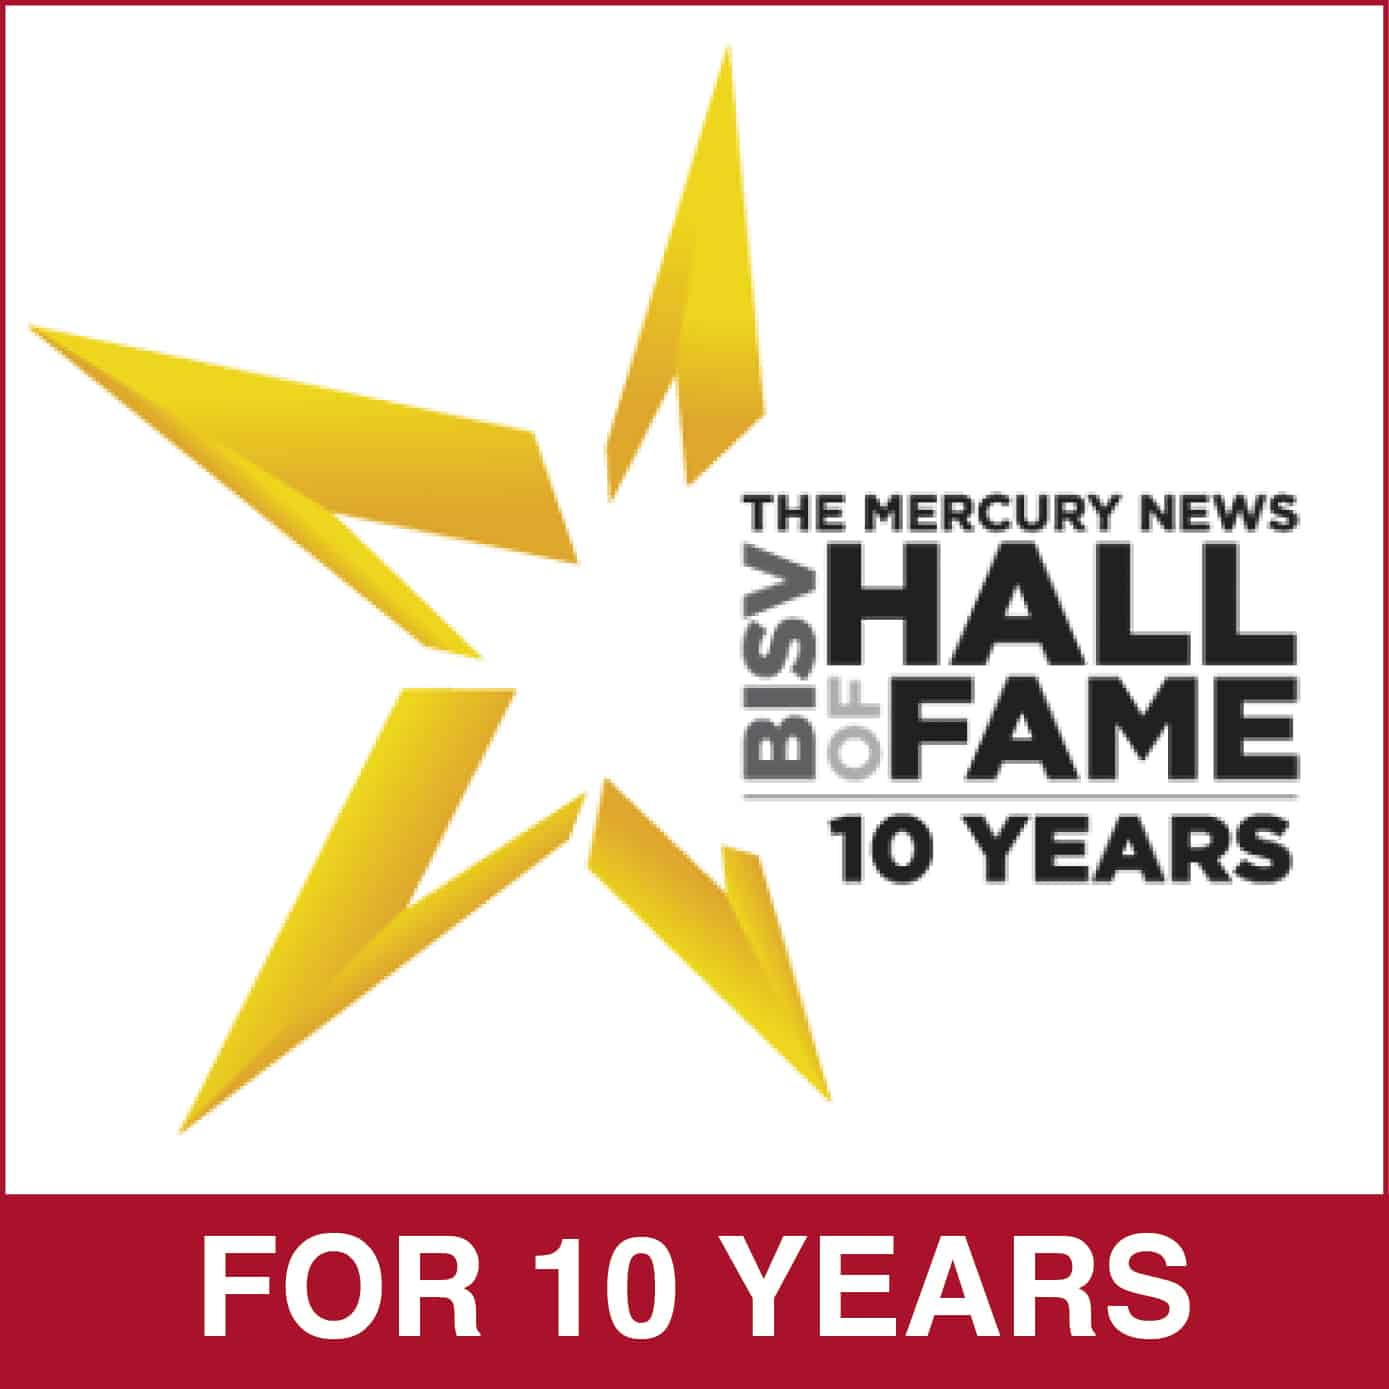 Hall of Fame 10 Years Silicon Valley